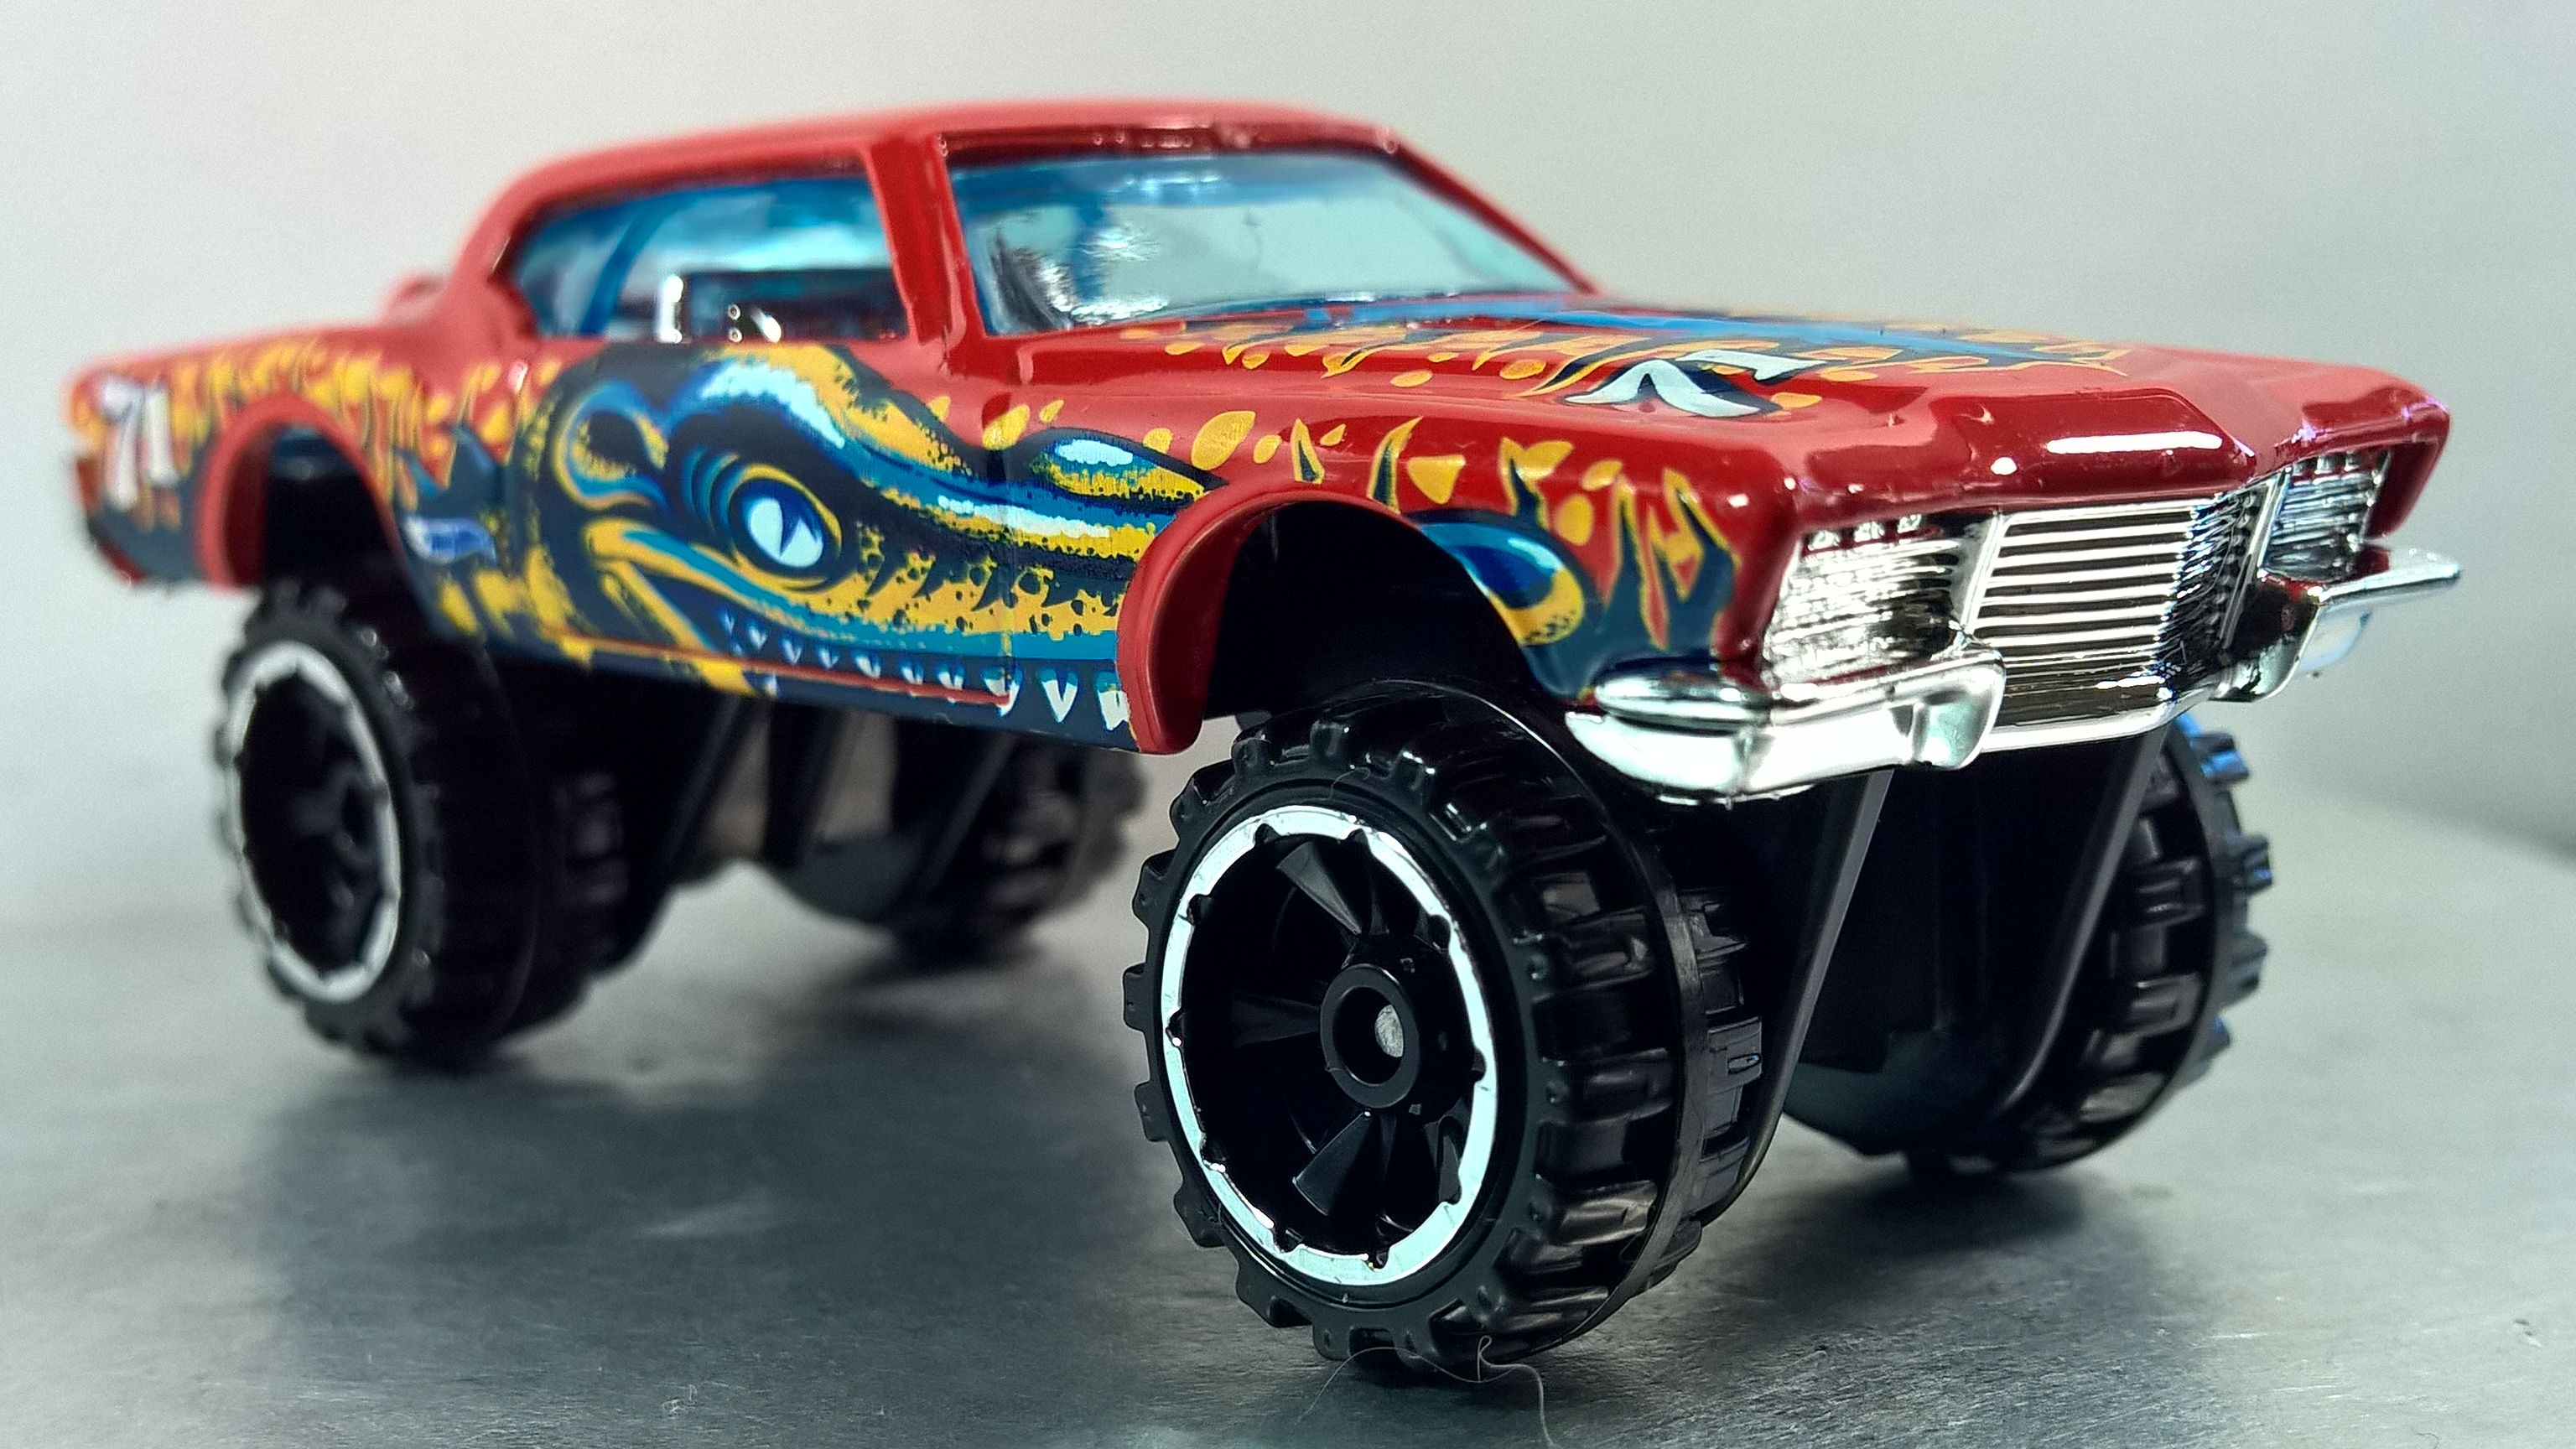 '71 RIVIERA Thrill Racers Prehistoric 1/5 2012 8 Hot